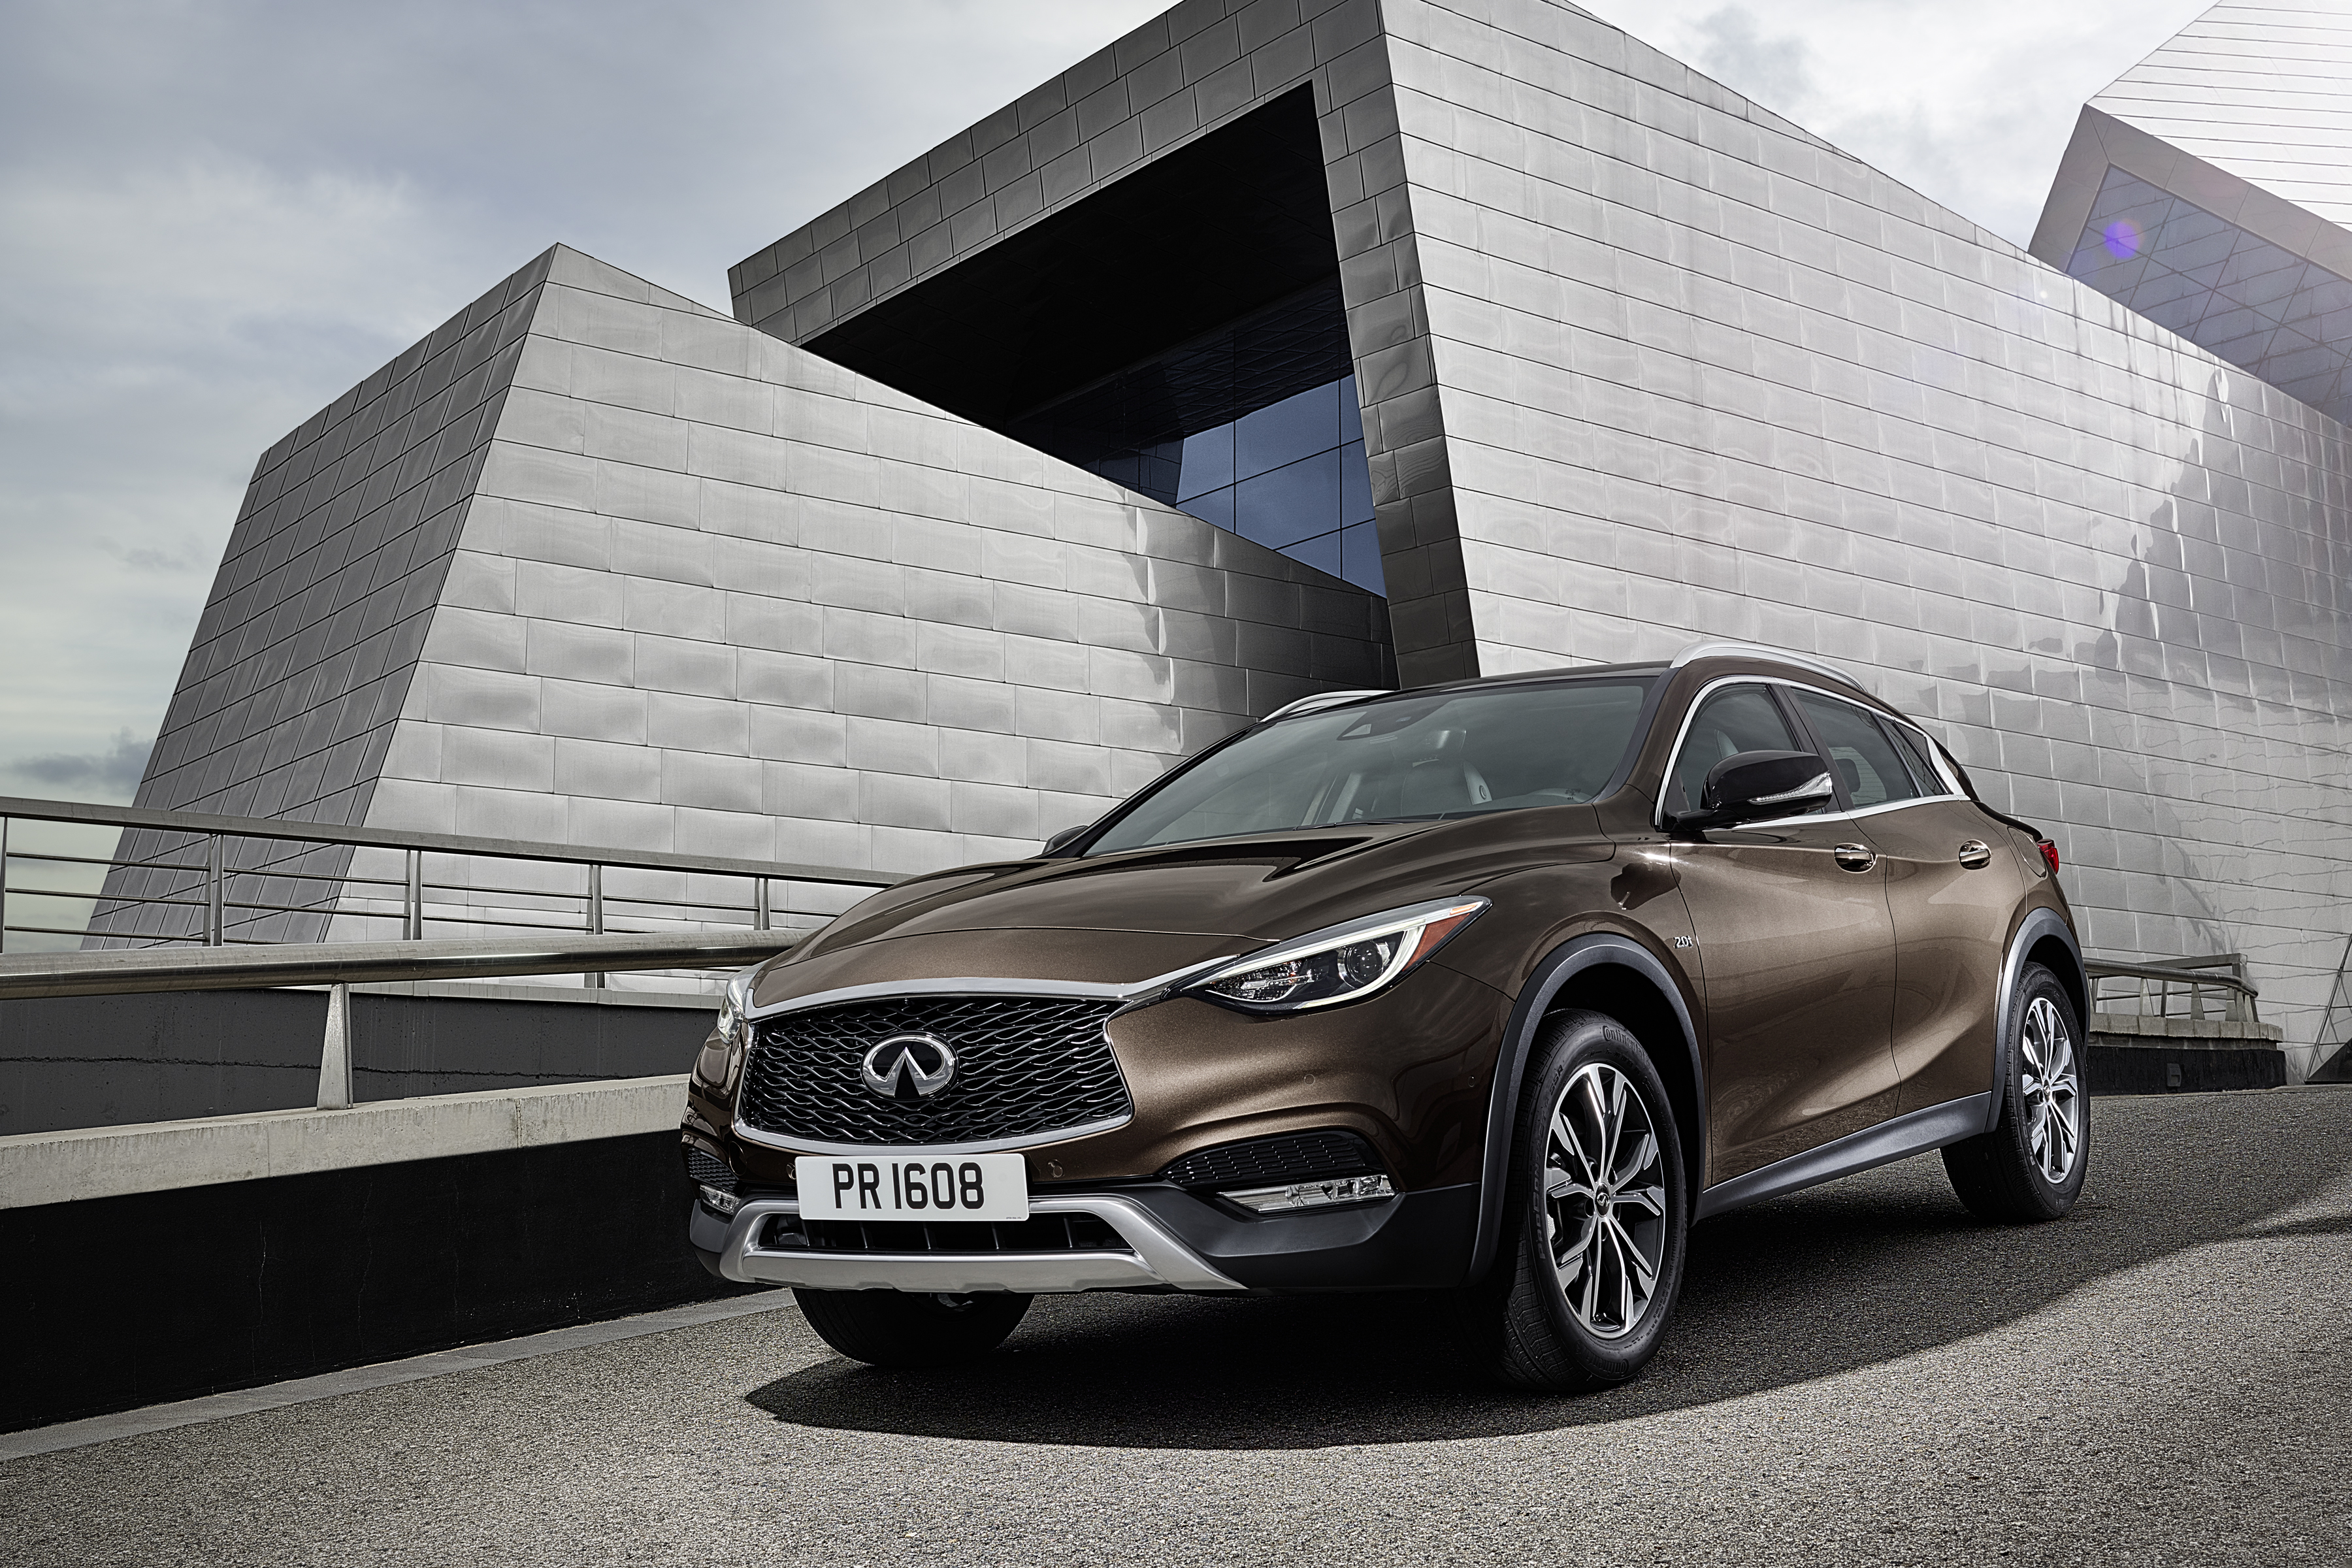 Stylish and intelligent INFINITI QX30 crossover makes debut in Abu Dhabi and Al Ain market